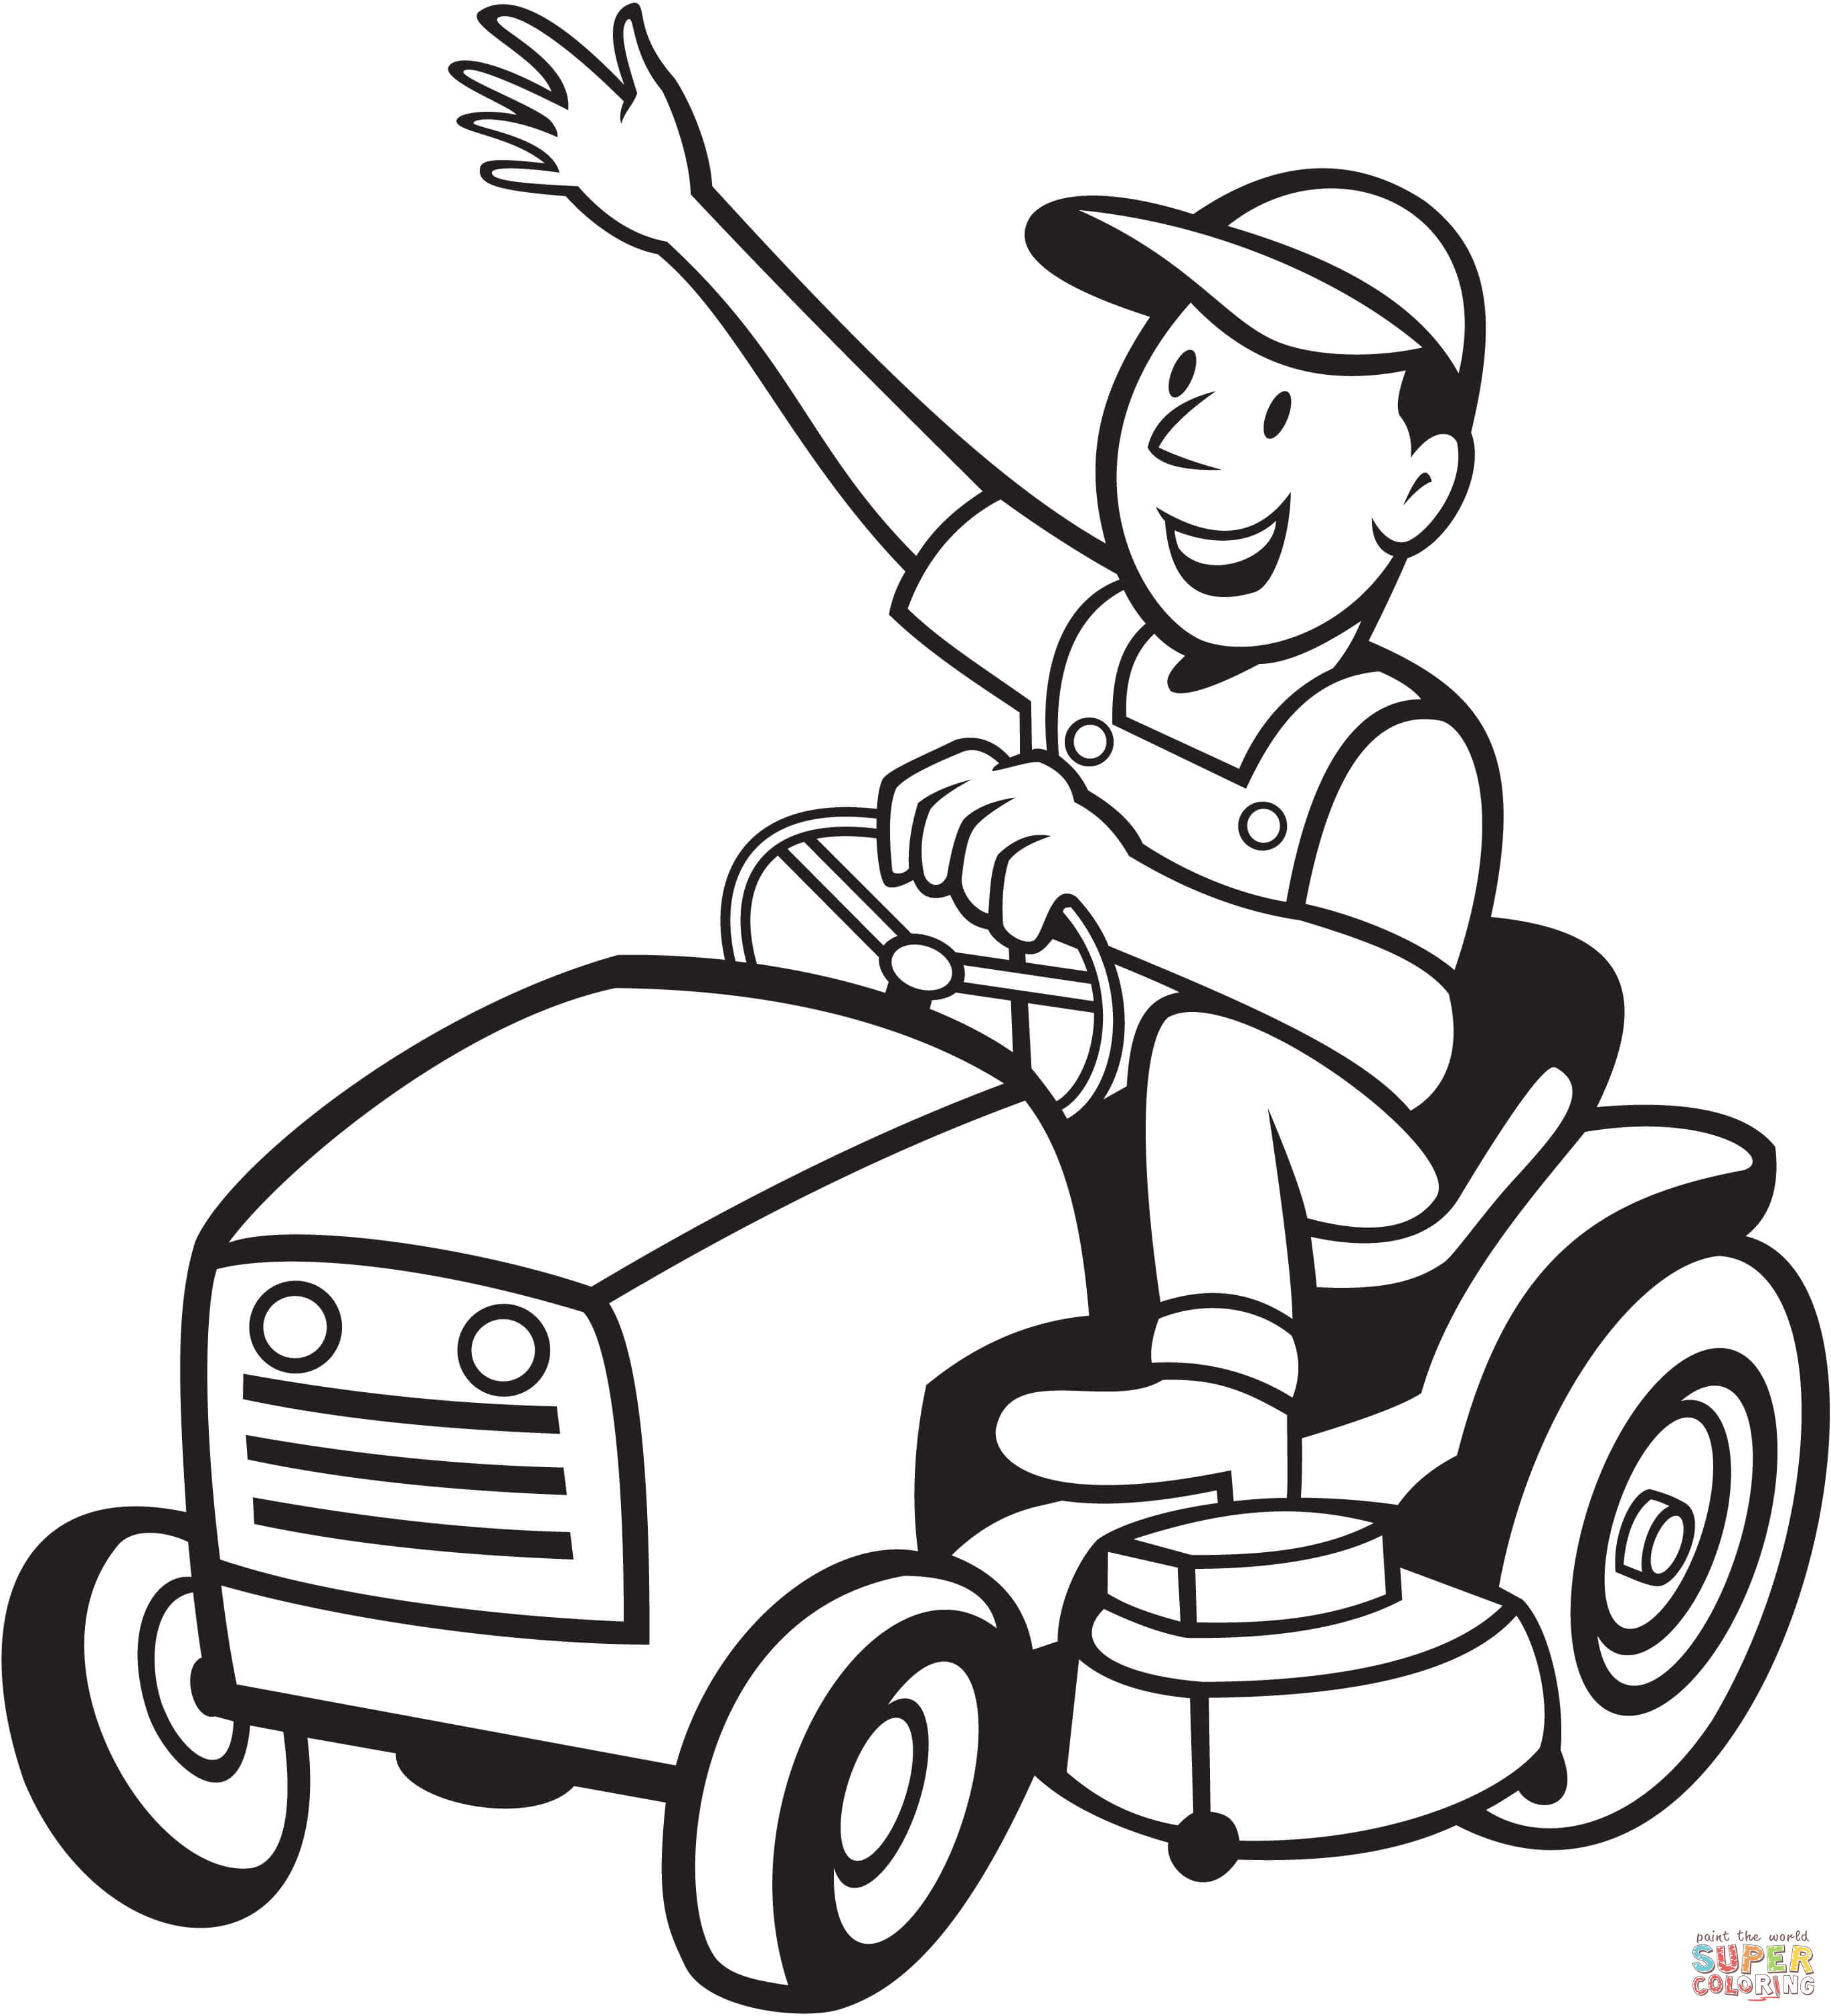 The Best Free Mower Drawing Images Download From 50 Drawings Tractors Furthermore Mtd Riding Drive Belt Diagram Likewise 2736x3012 Farmer A Tractor Coloring Page Printable